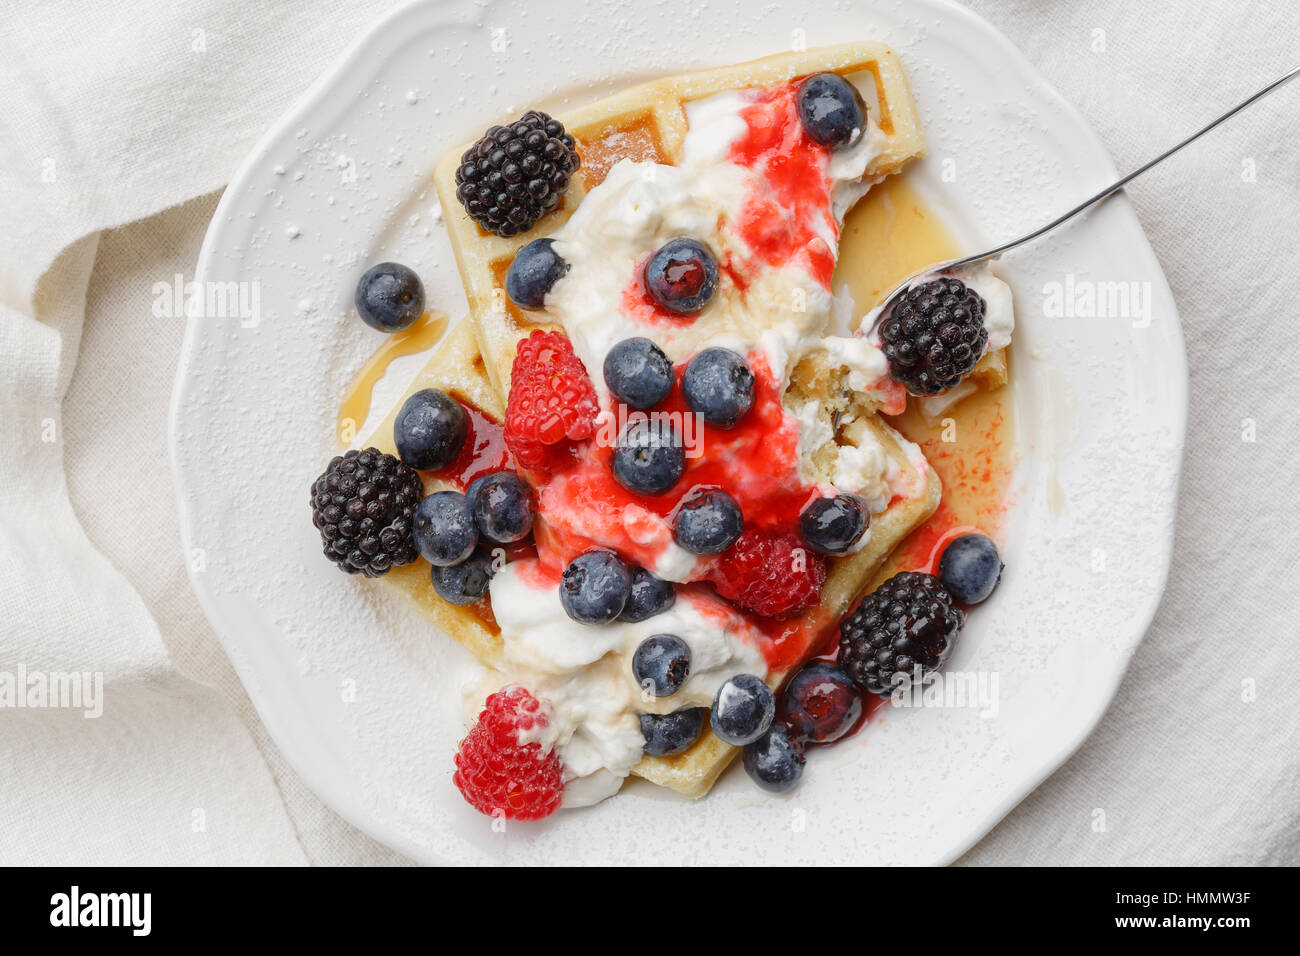 Waffles with raspberries, blueberries, whipped cream, berry fruit sauce and maple syrup - Stock Image